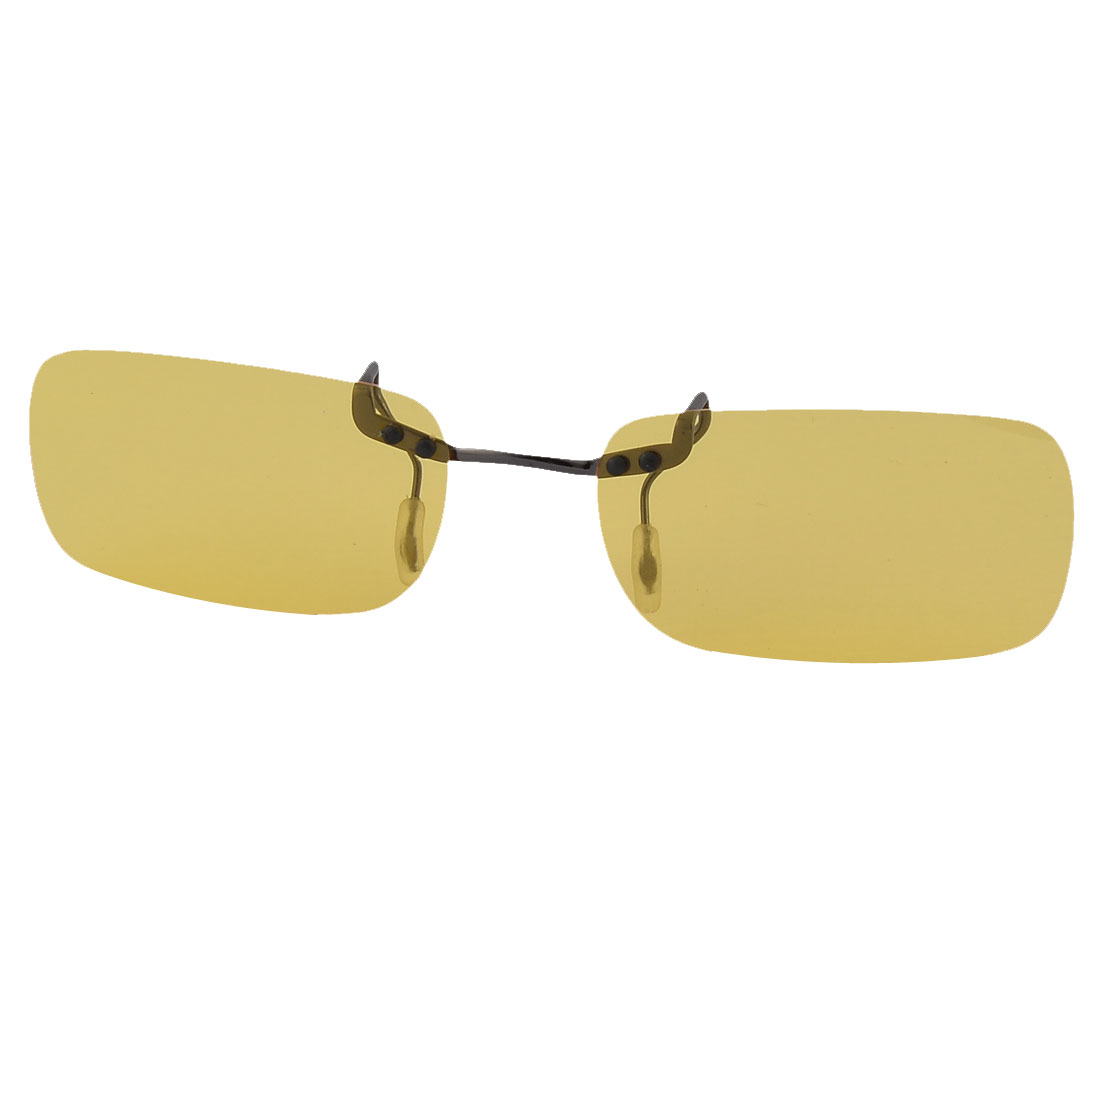 Unisex Sport Driving Rimless Lens Clip On Polarized Sunglasses Glasses Eyewear